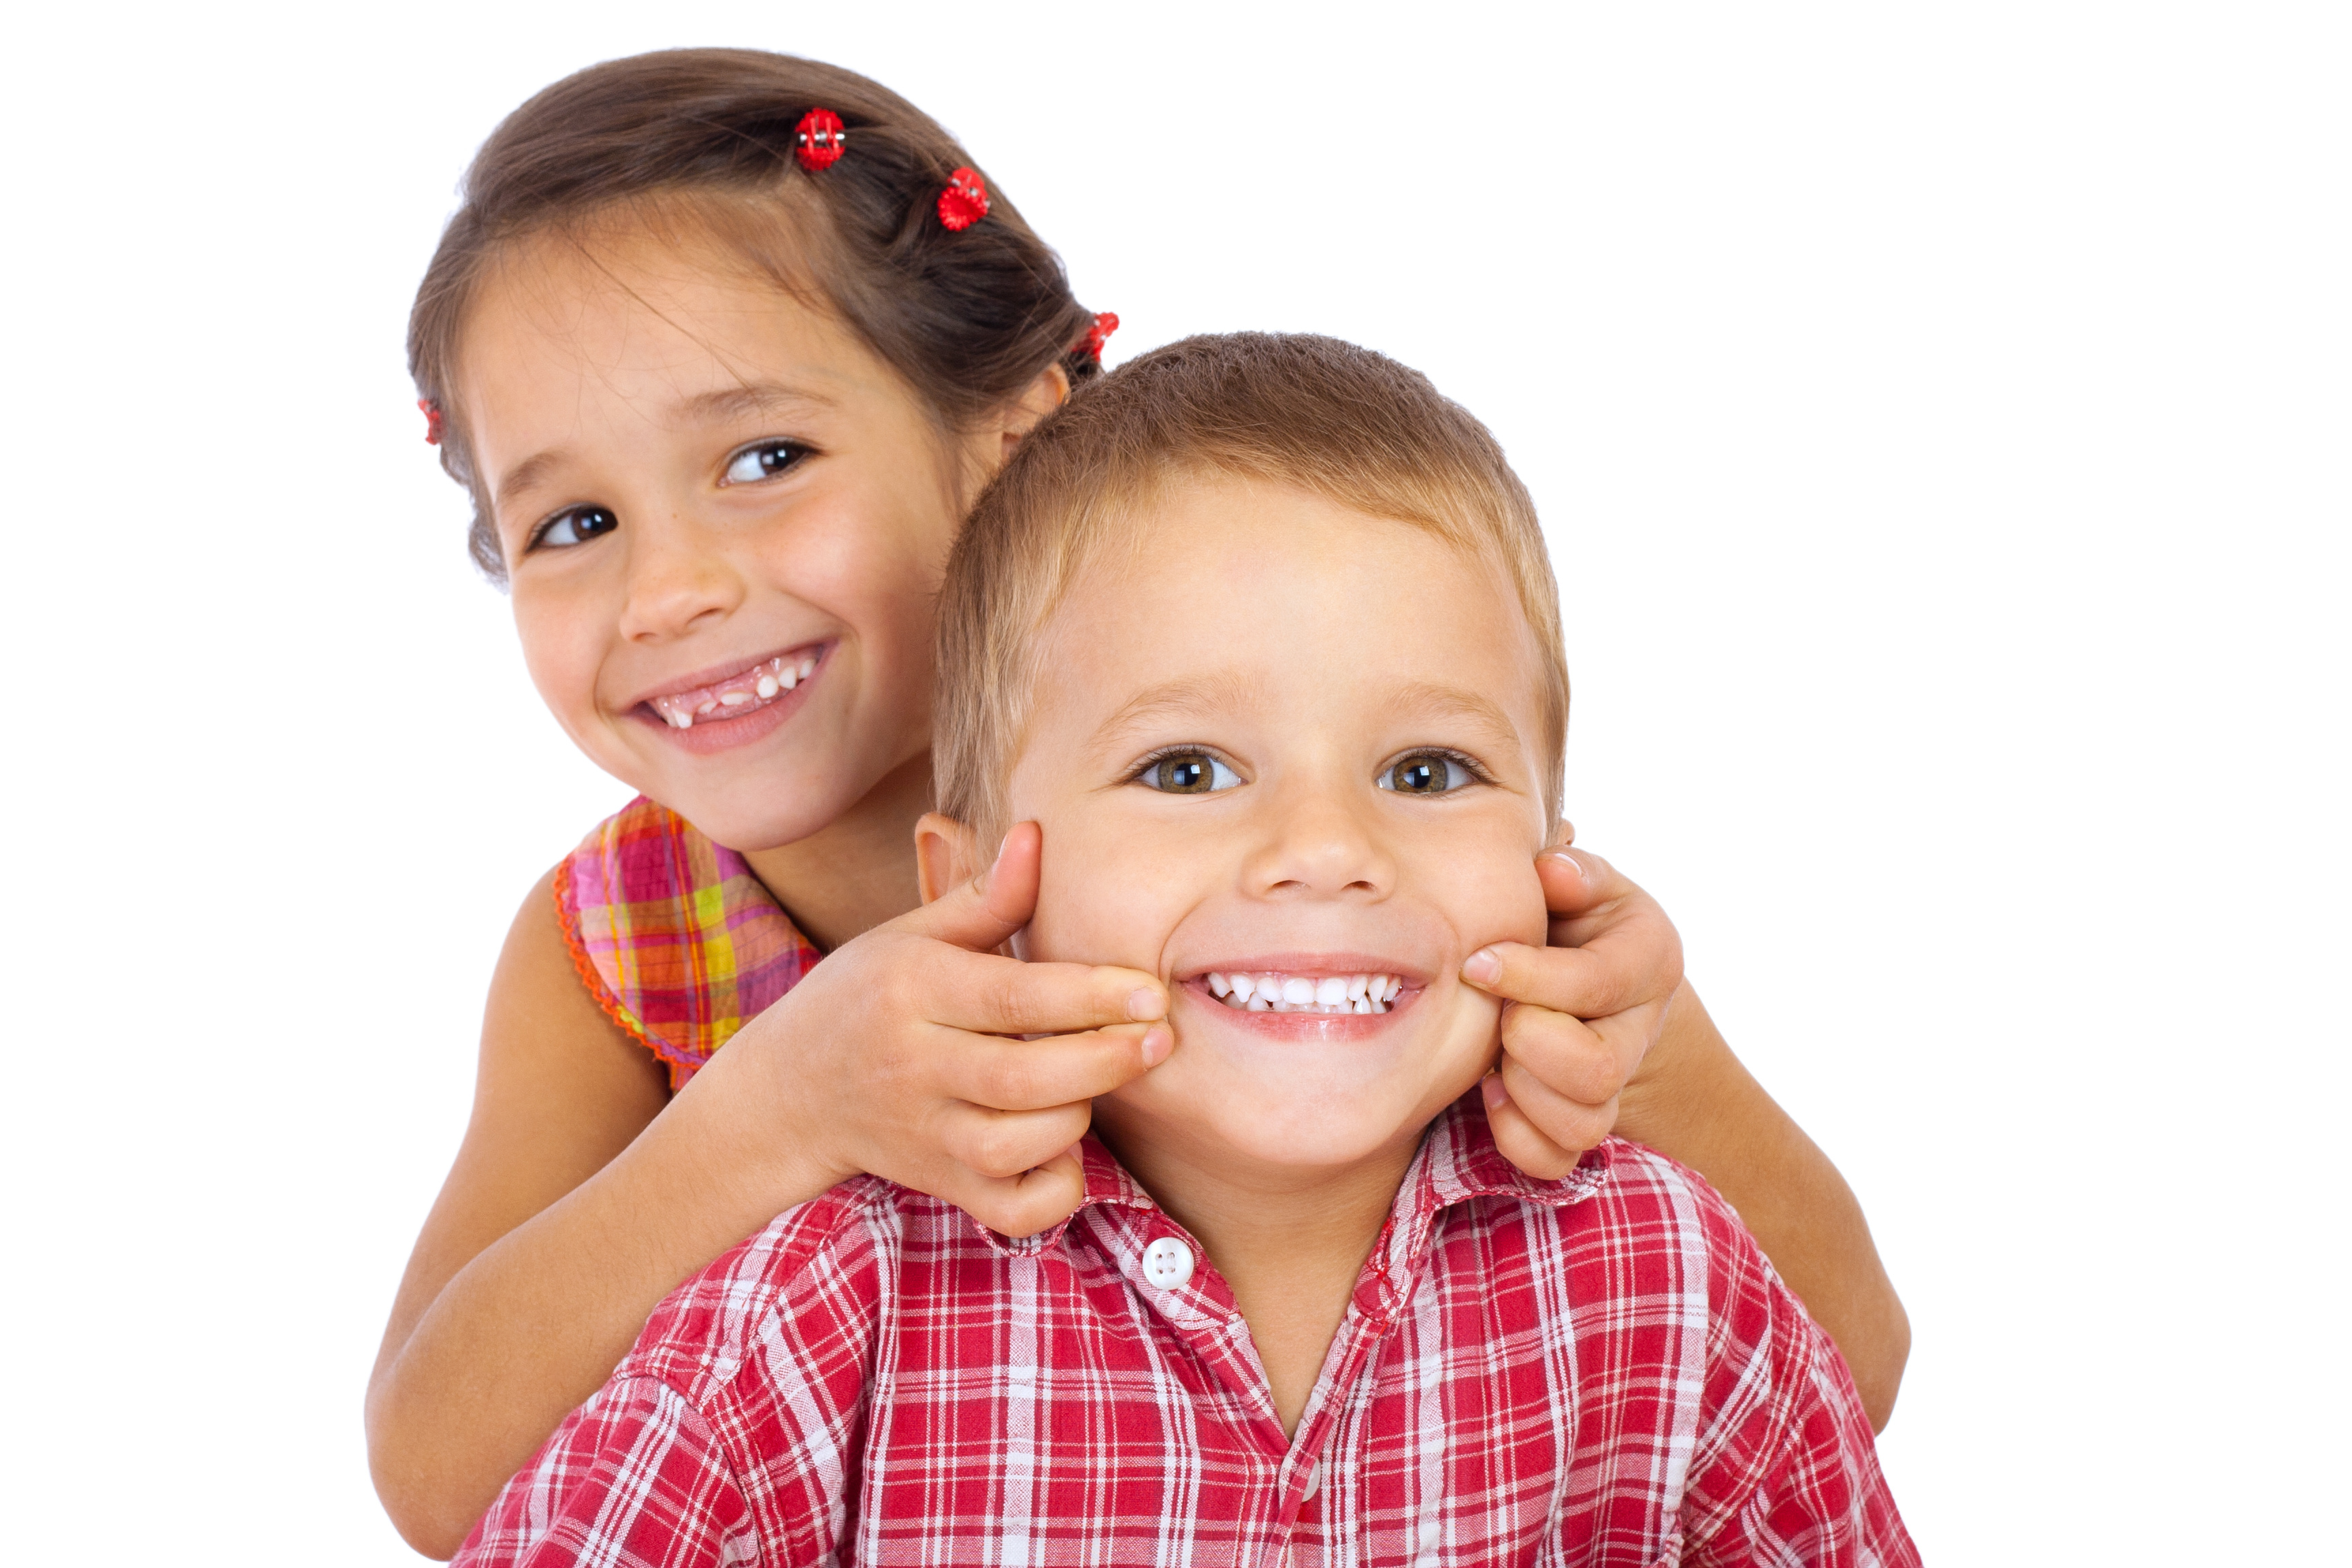 Children with healthy smiles